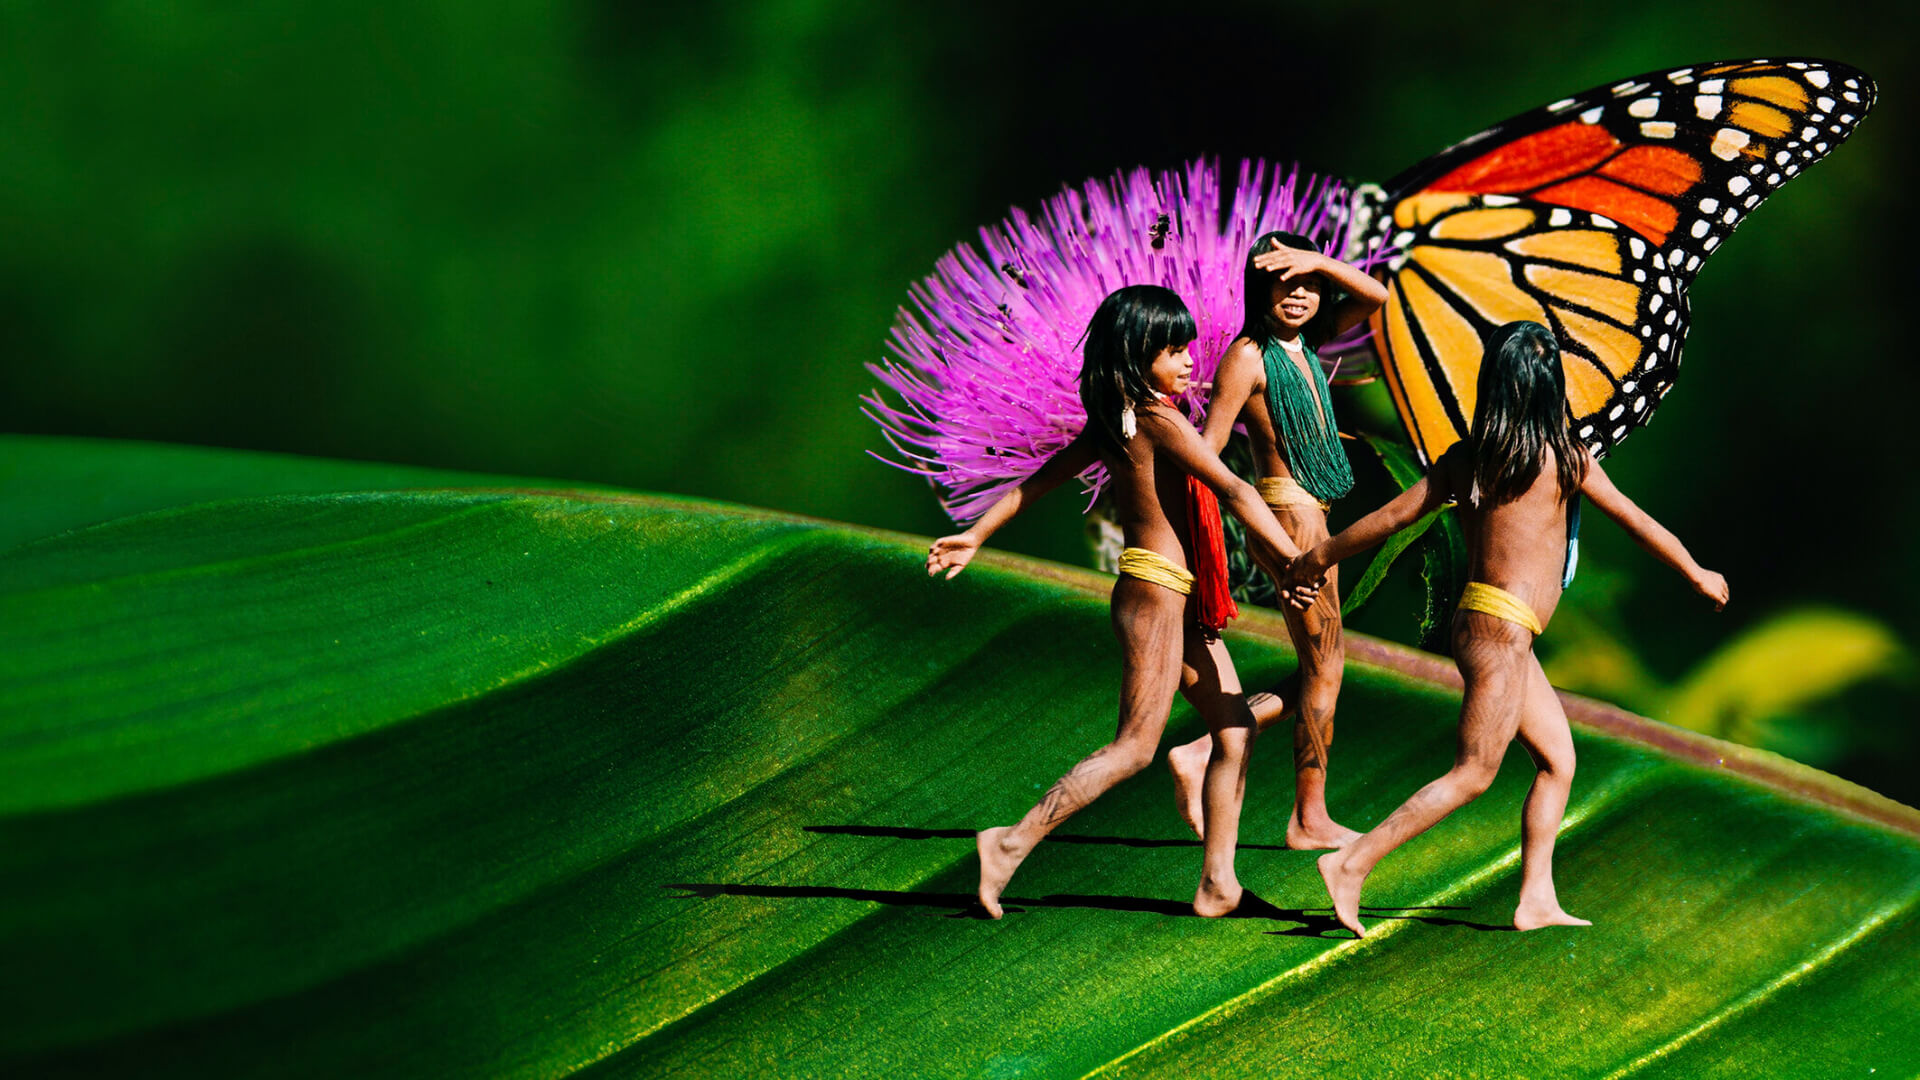 Three indigenous girls incorporated into a digital artwork piece for CHOOSE EARTH